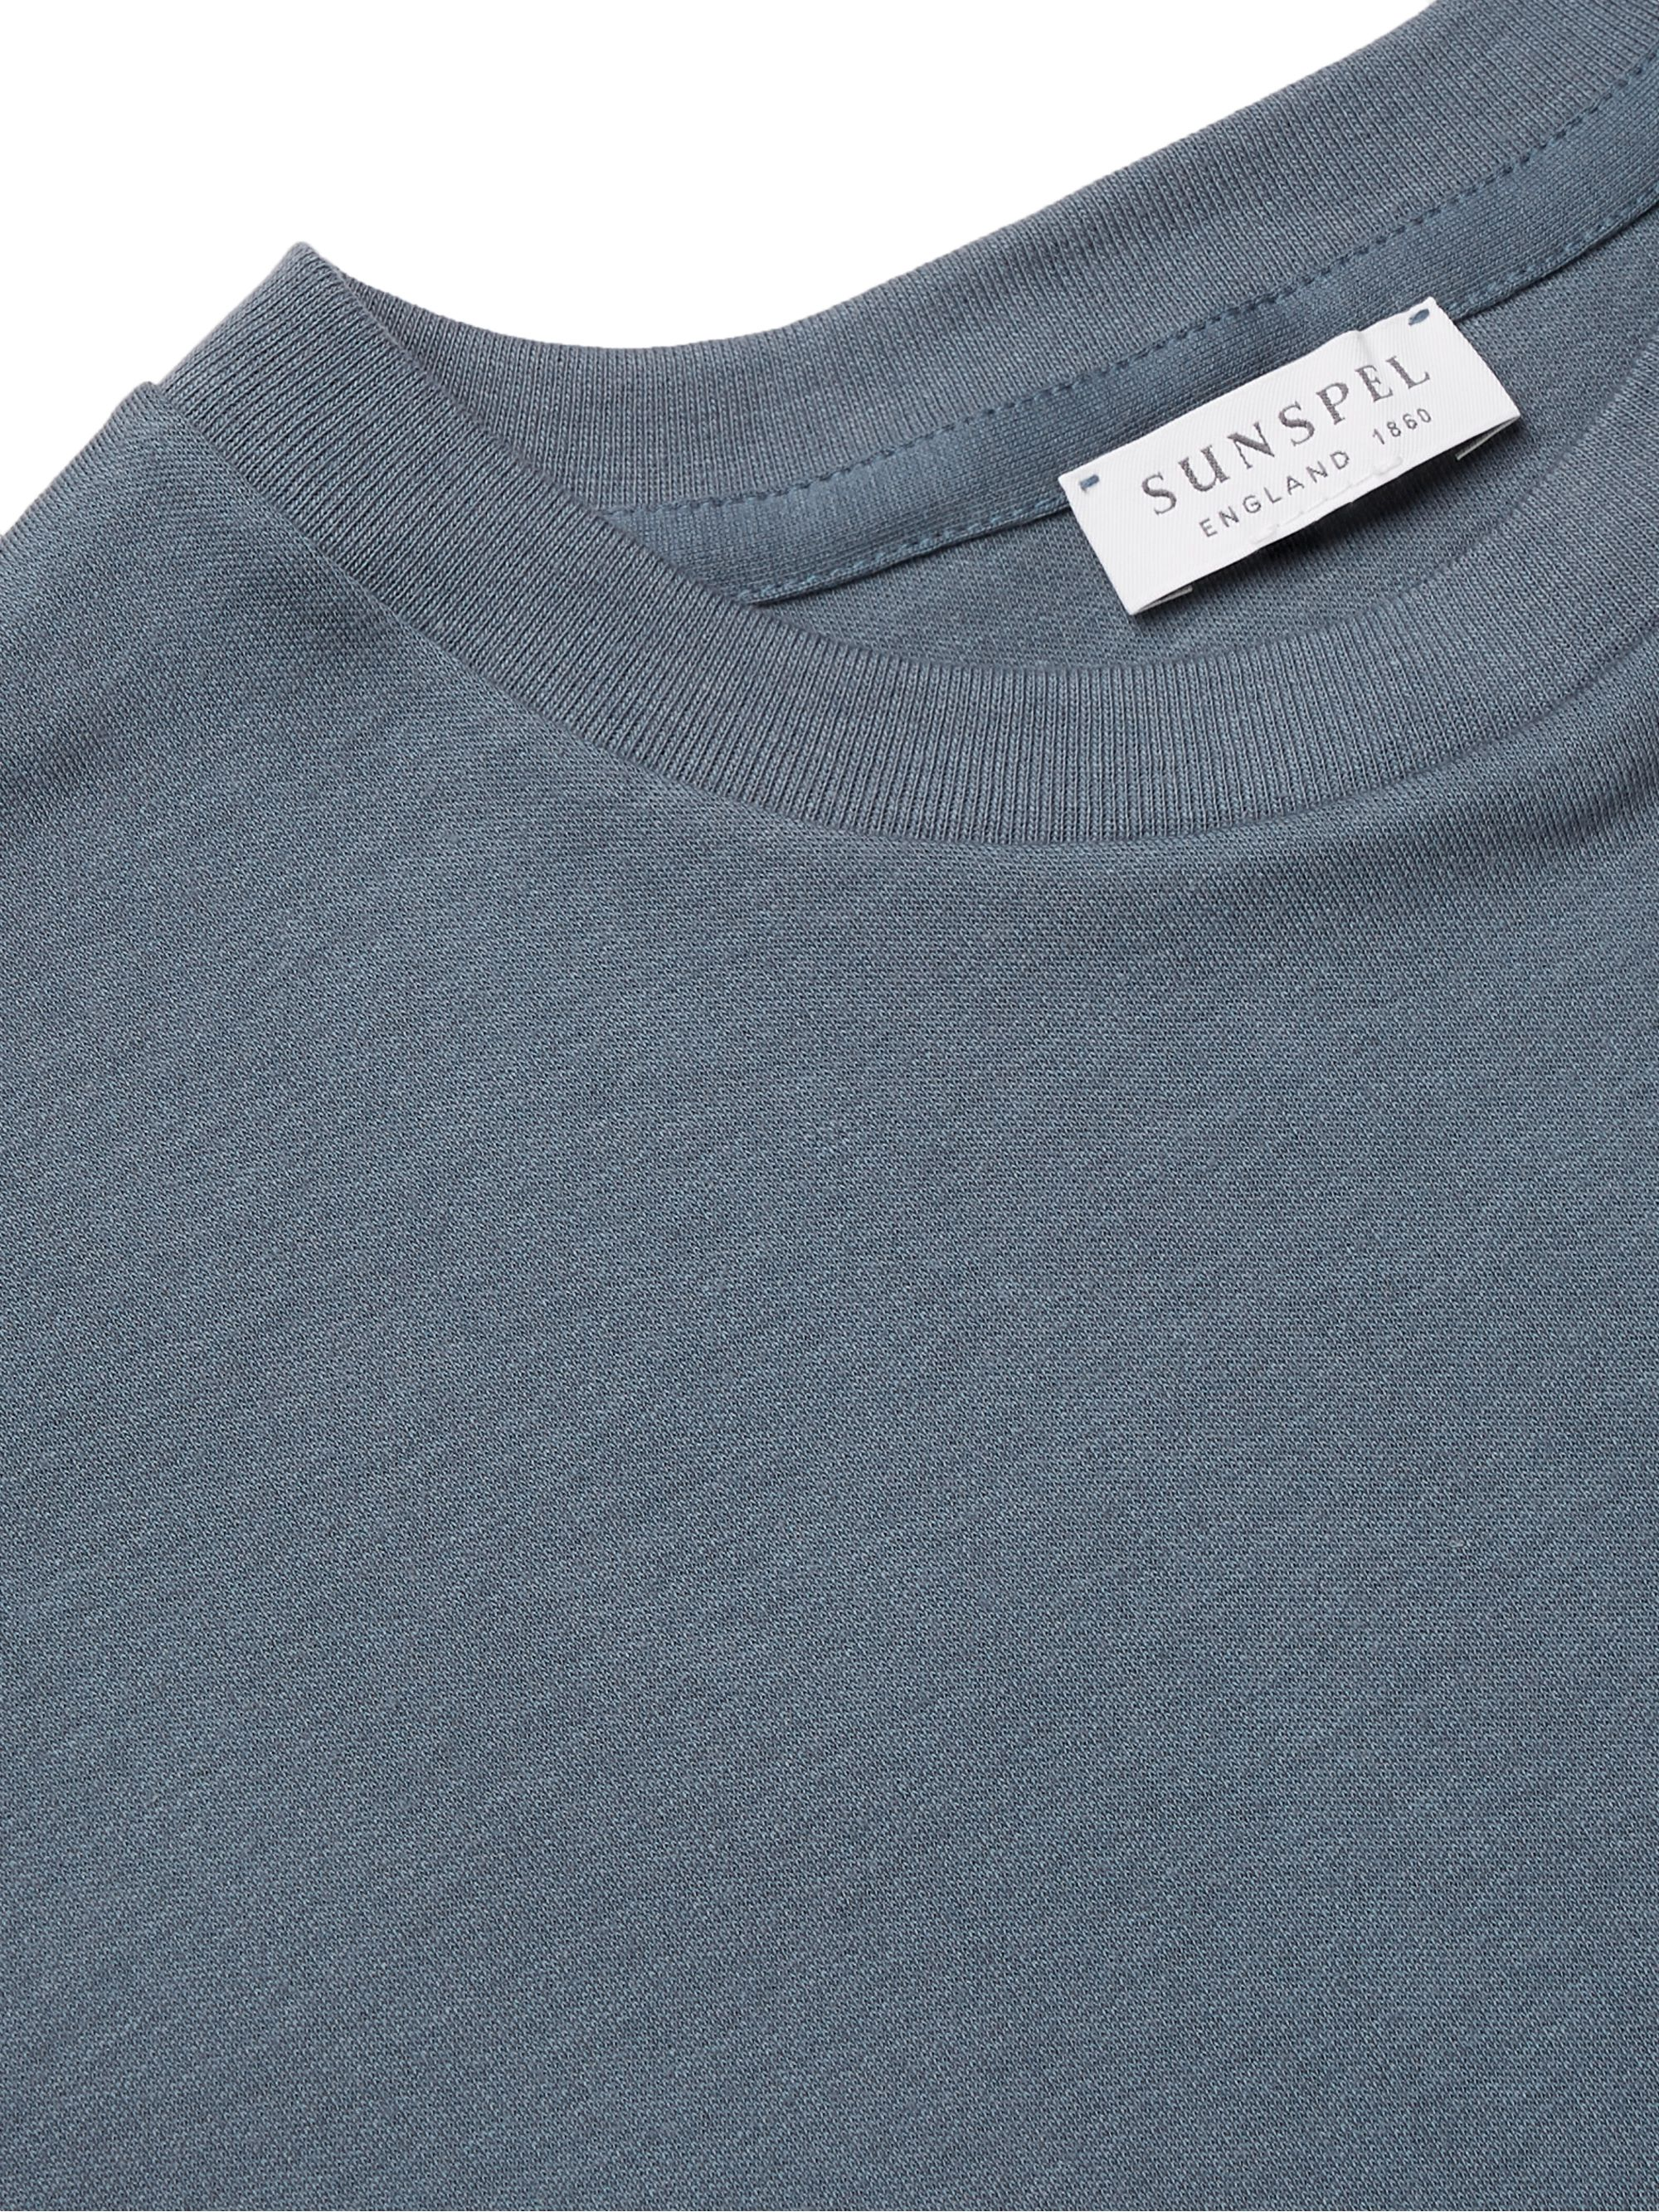 Sunspel Cavendish Cotton-Jersey T-Shirt